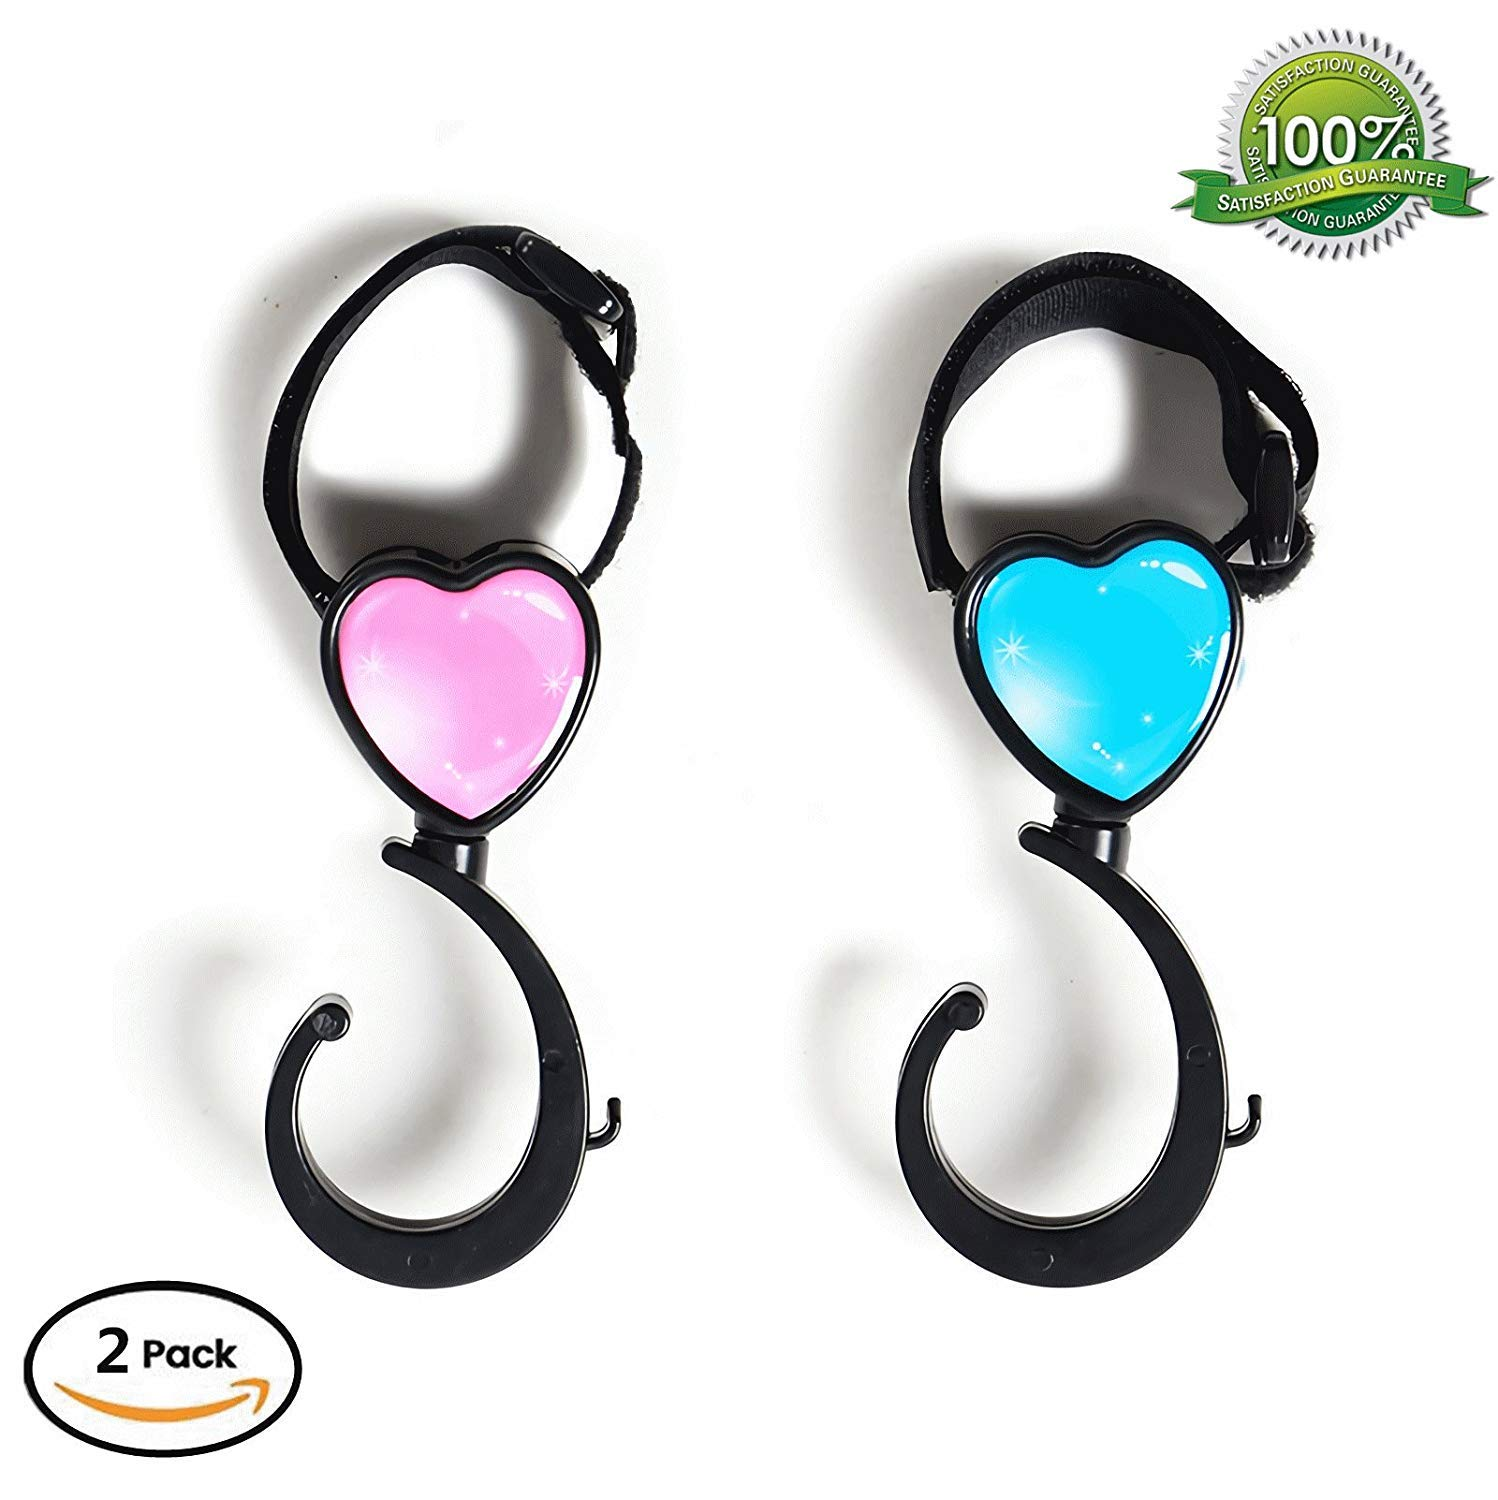 Stroller Hooks - Multi Purpose Stroller Clips - Handy Baby Stroller Accessories Hook Hanger for Hanging Bags, Diaper Bags, Groceries, Purse and More